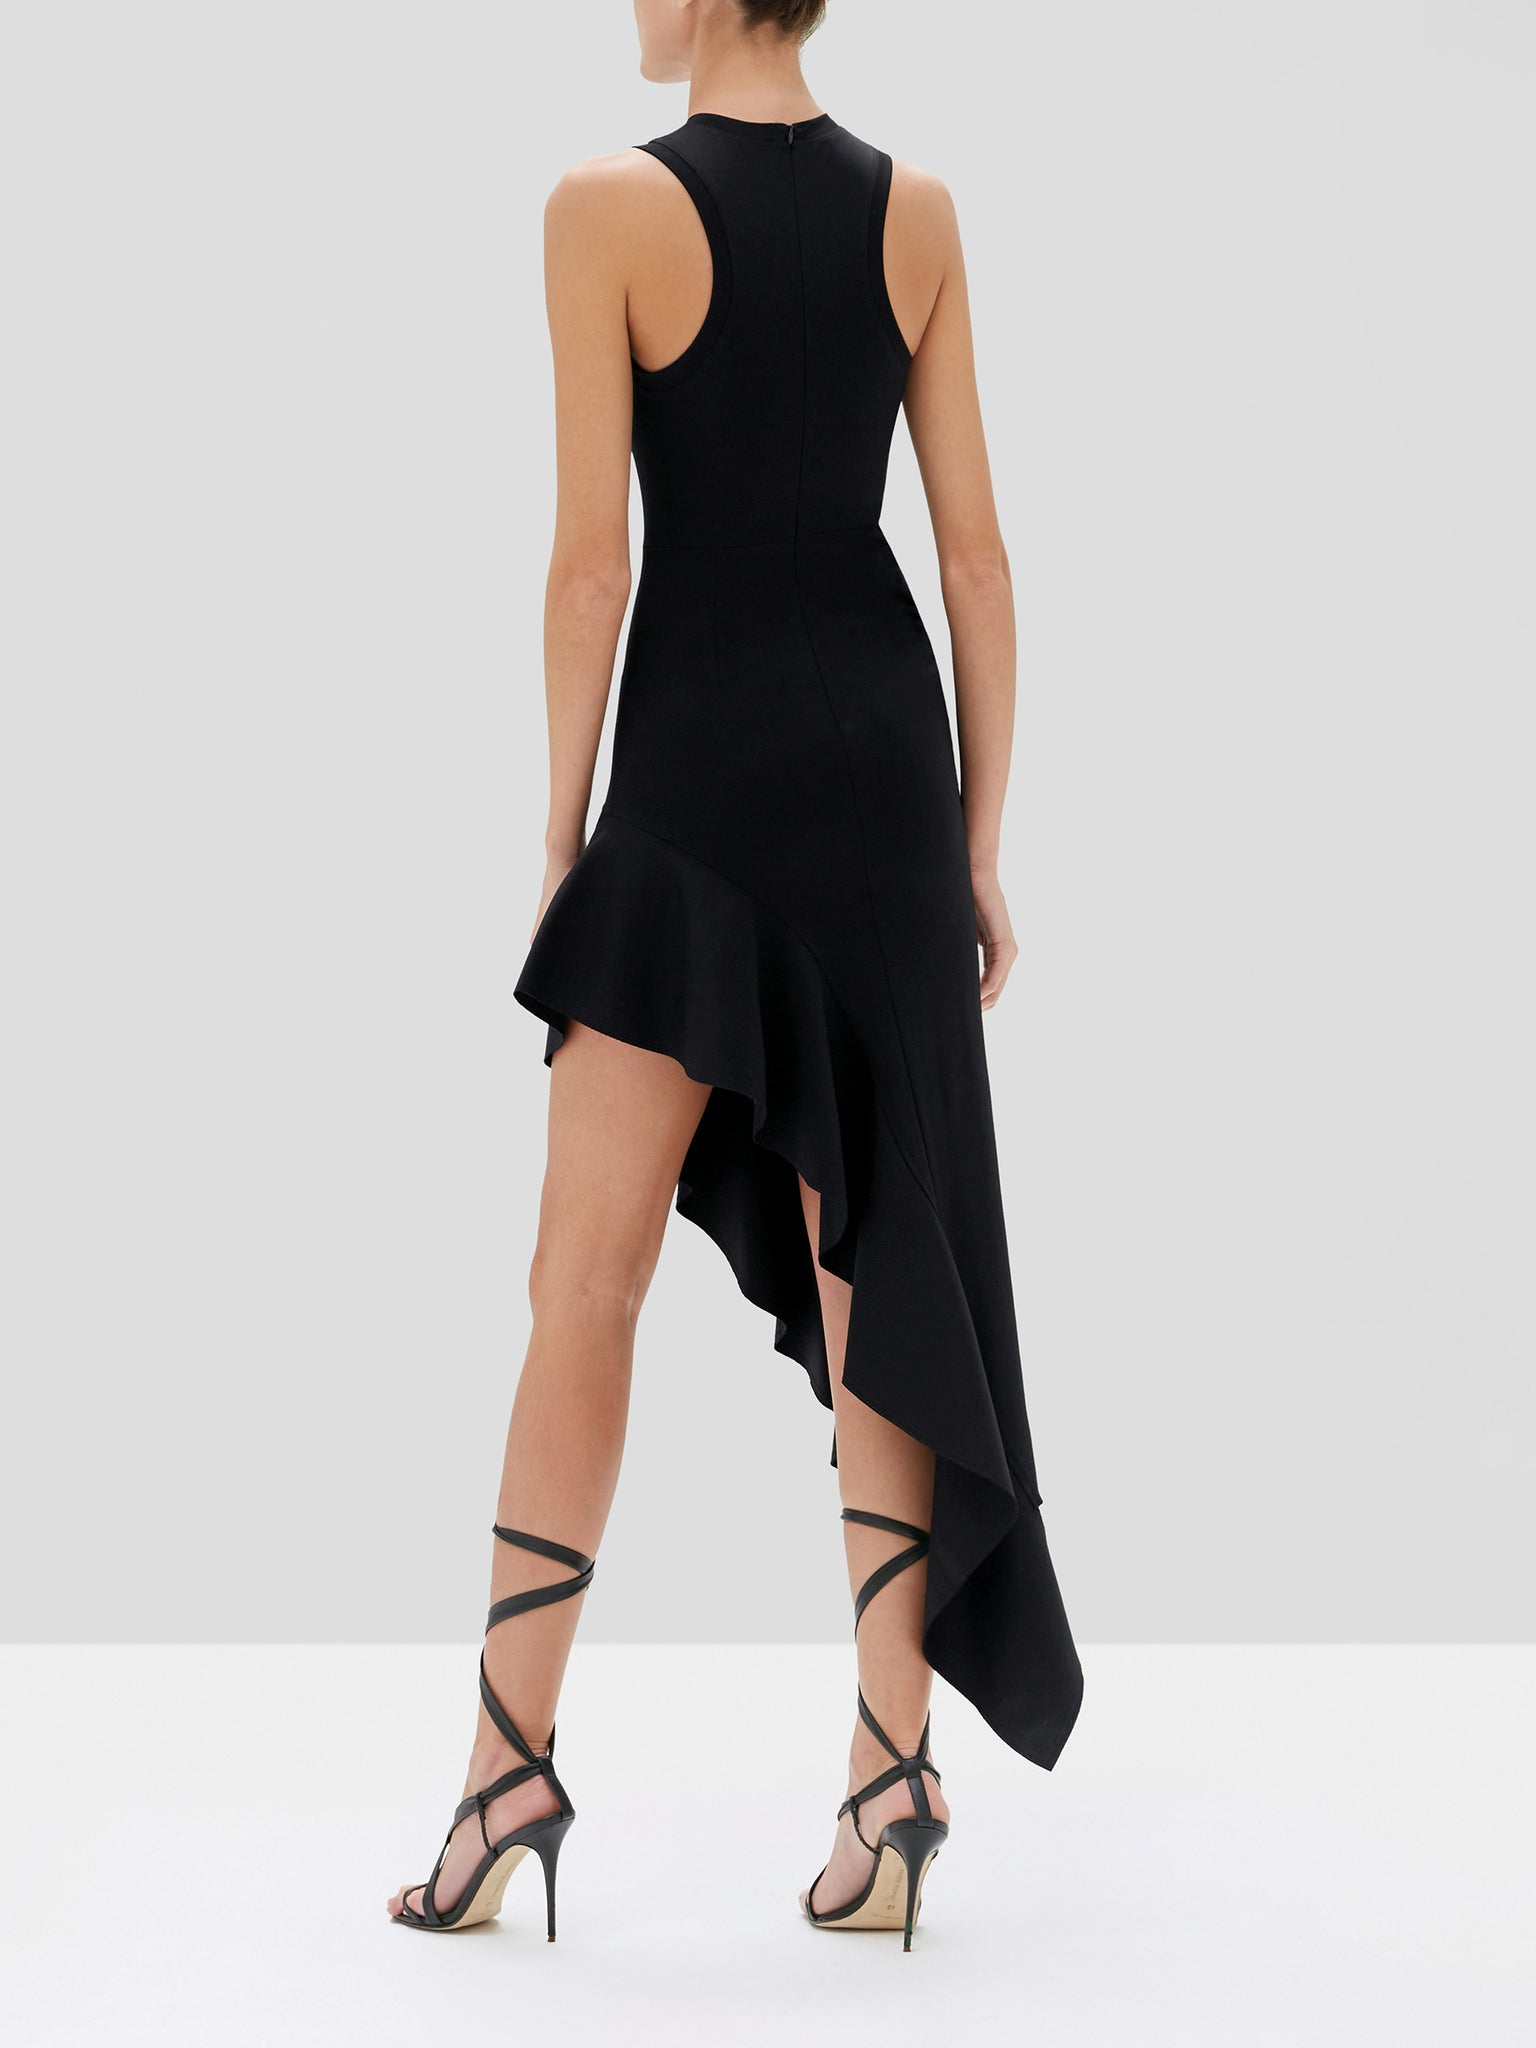 adva dress in black - Rear View